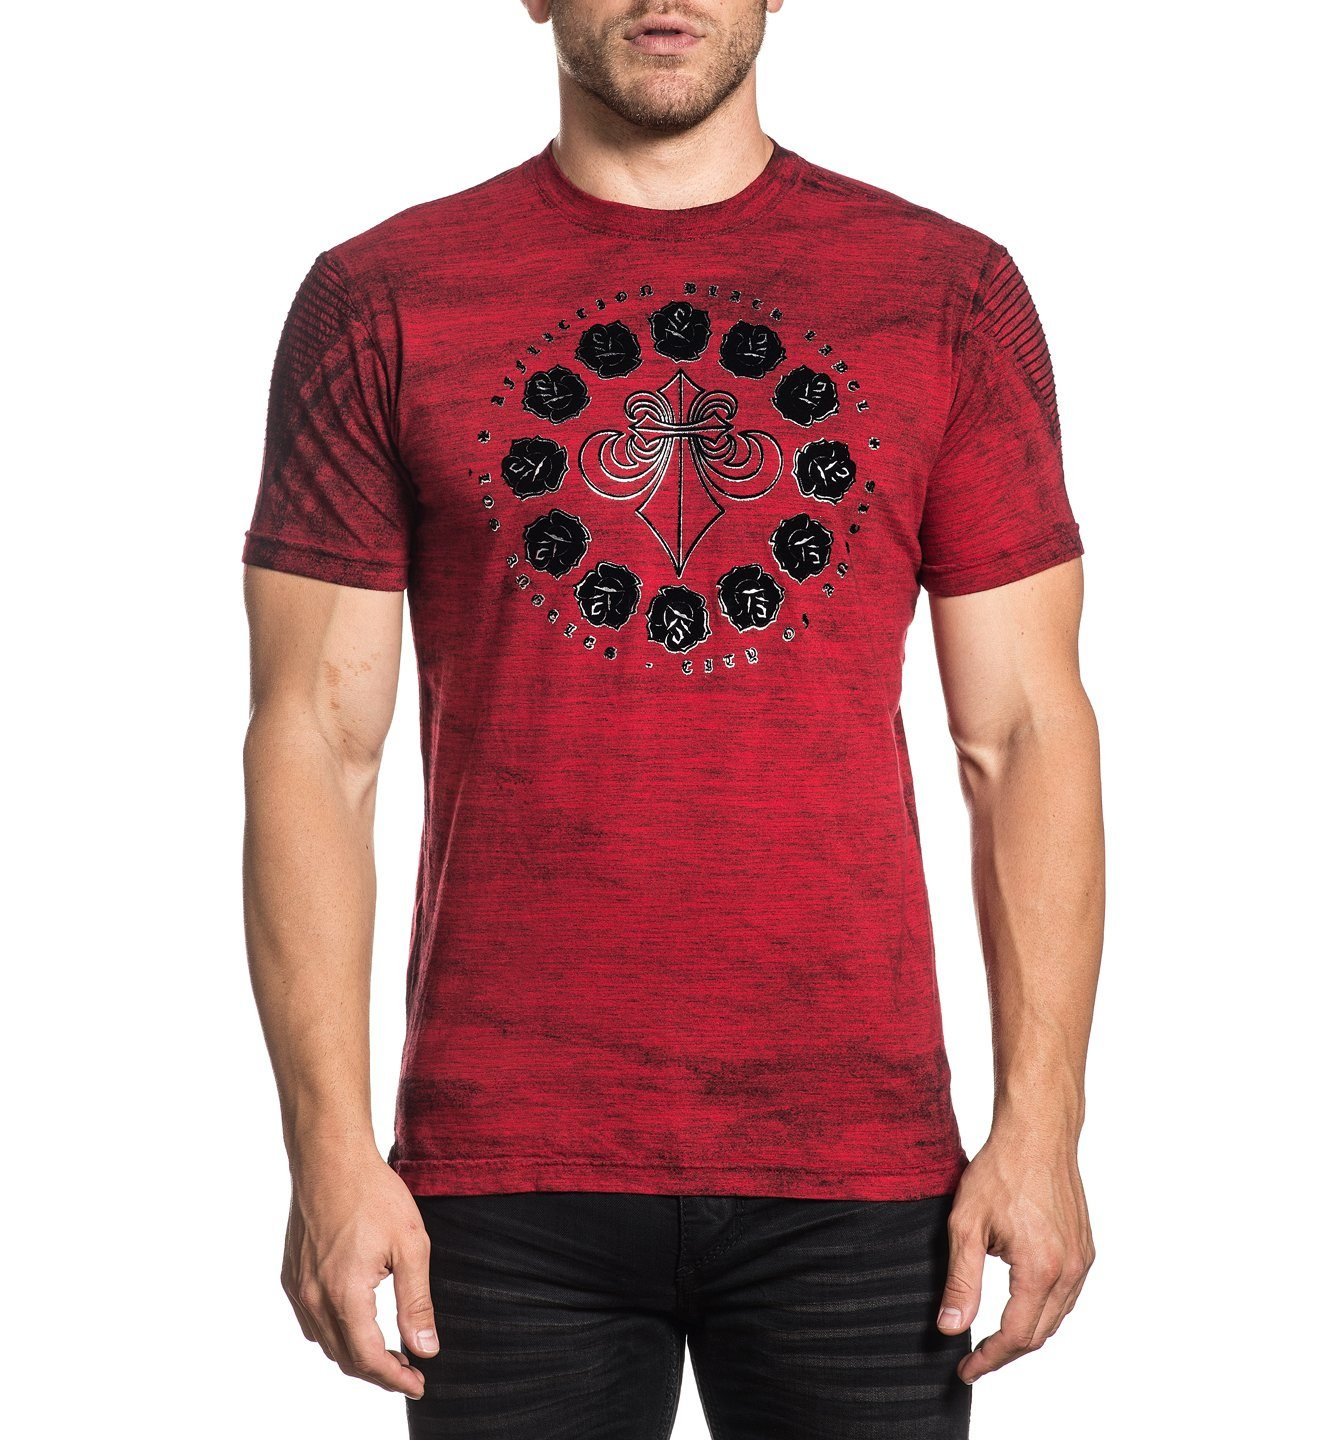 Circle Of Souls - Mens Short Sleeve Tees - Affliction Clothing